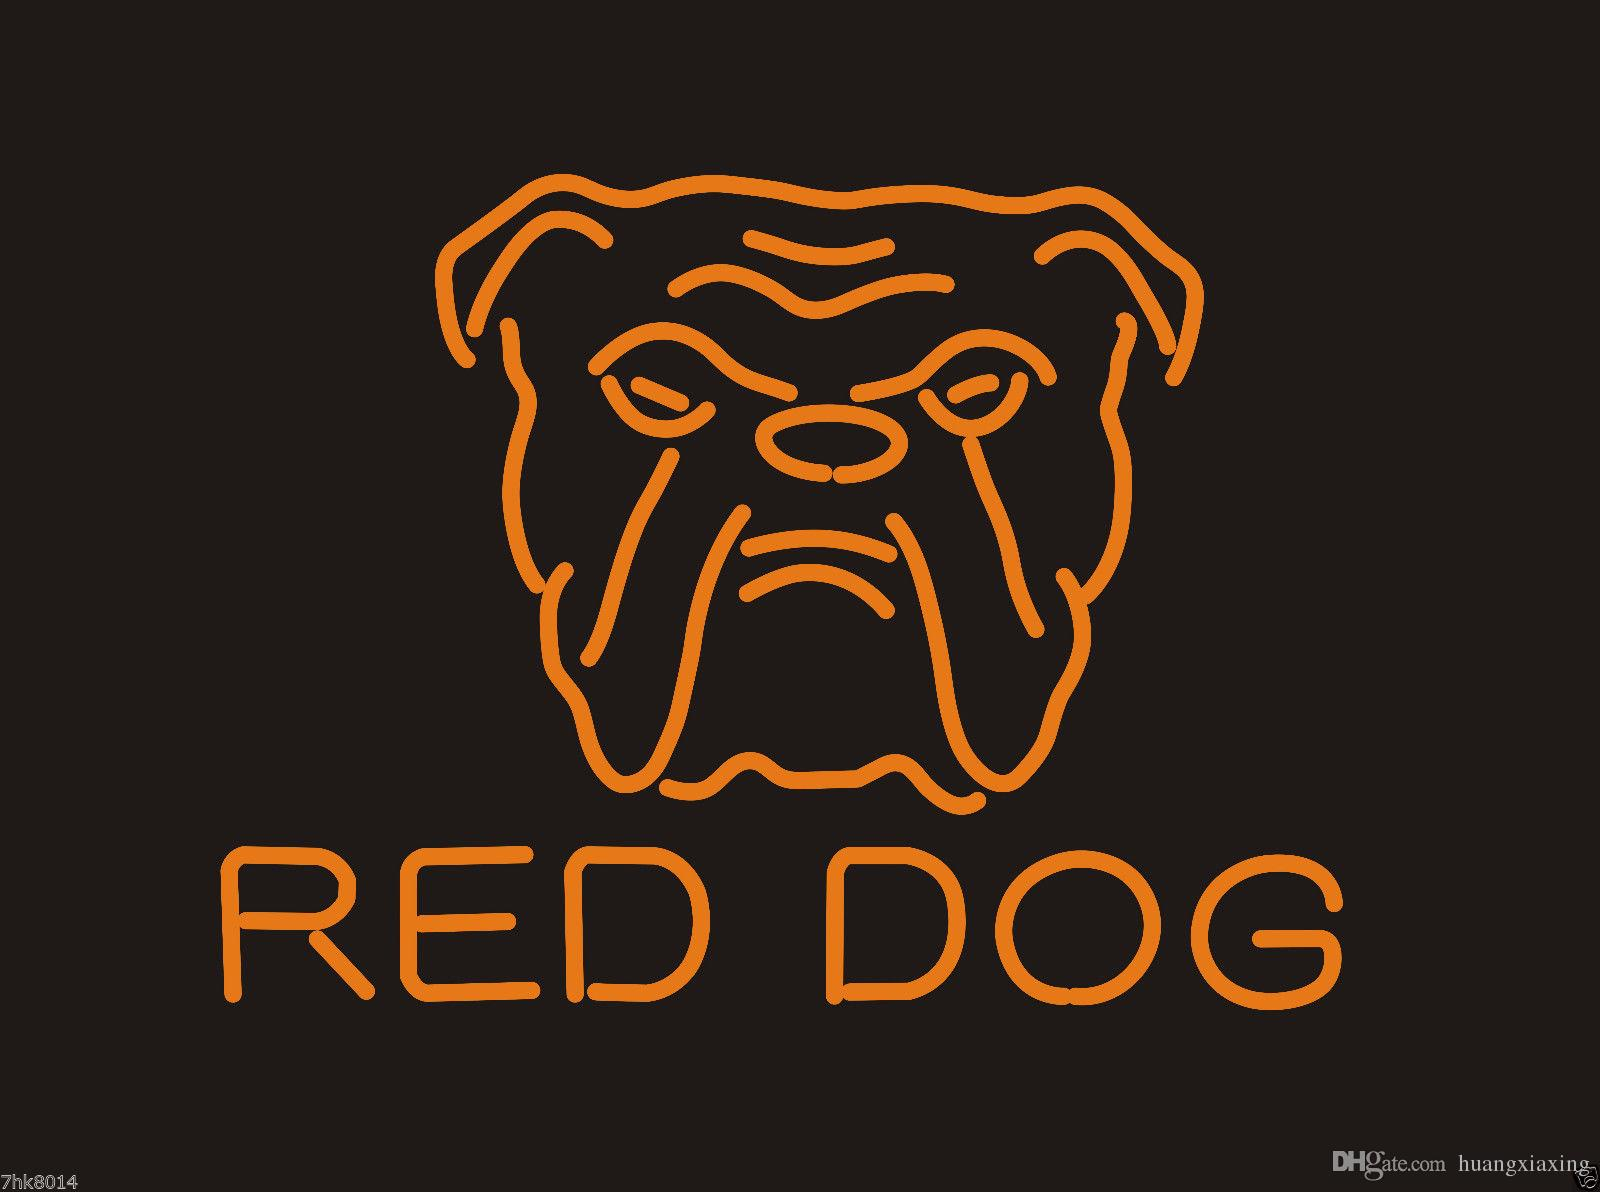 New ed dog glass neon beer signs pub bars neon light red blue 17 19 new ed dog glass neon beer signs pub bars neon light red blue 17 19 32 ed dog ed dog neon ed dog neon signs online with 30533piece on huangxiaxings aloadofball Gallery